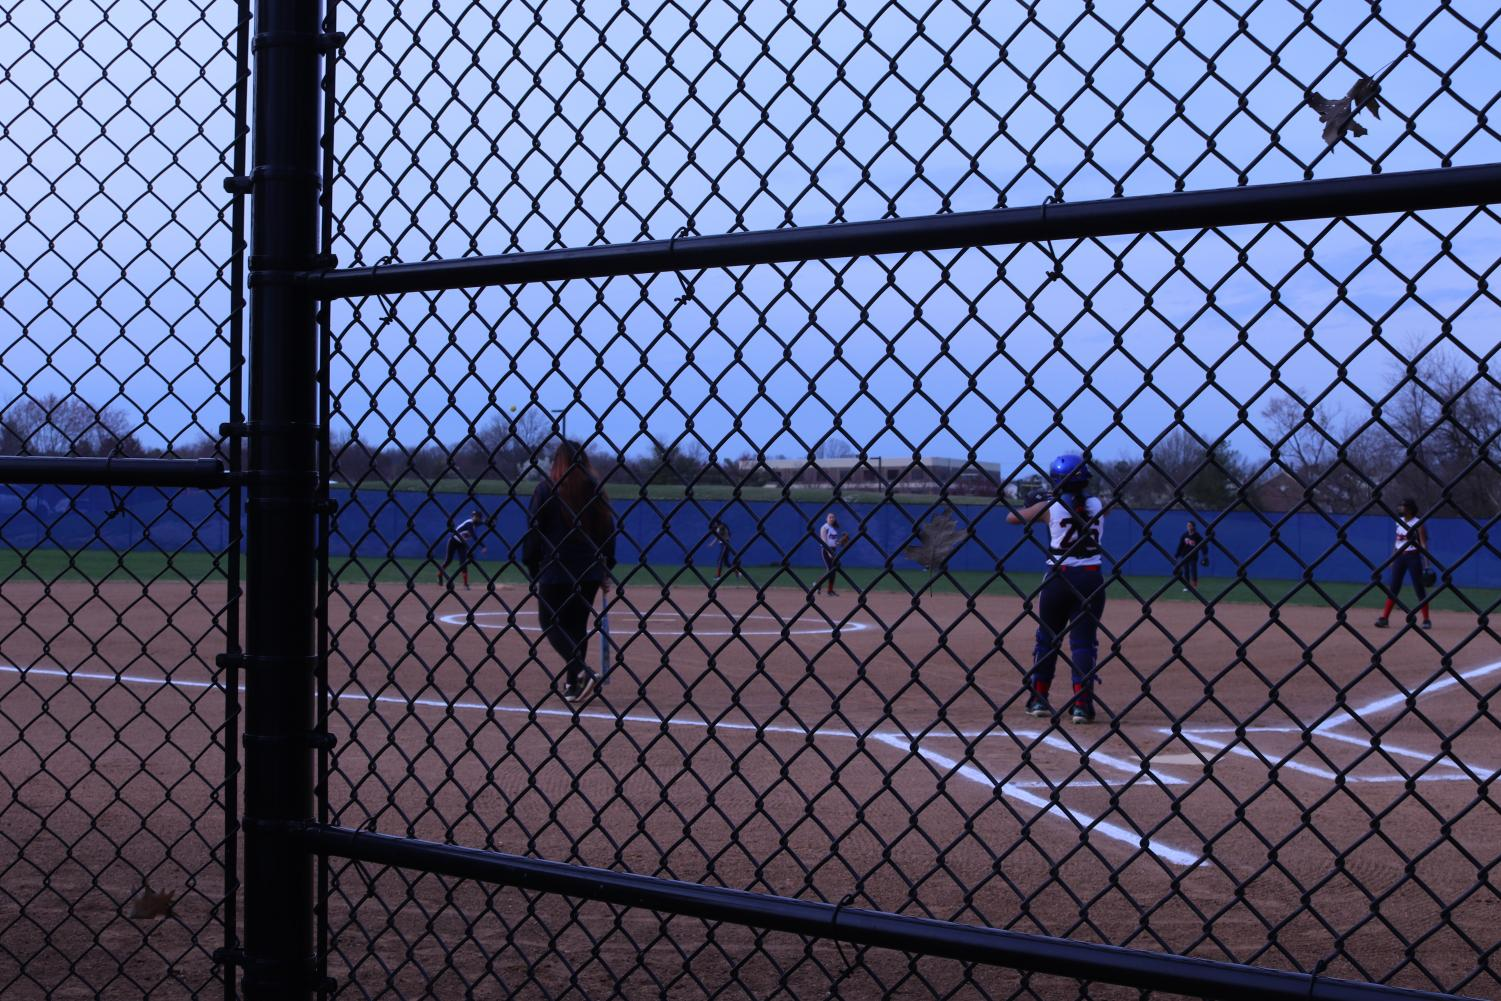 Jefferson+players+practiced+for+a+few+minutes+before+the+game+started.+Spectators+sit+behind+the+outfield+fence+as+they+watch+the+game.